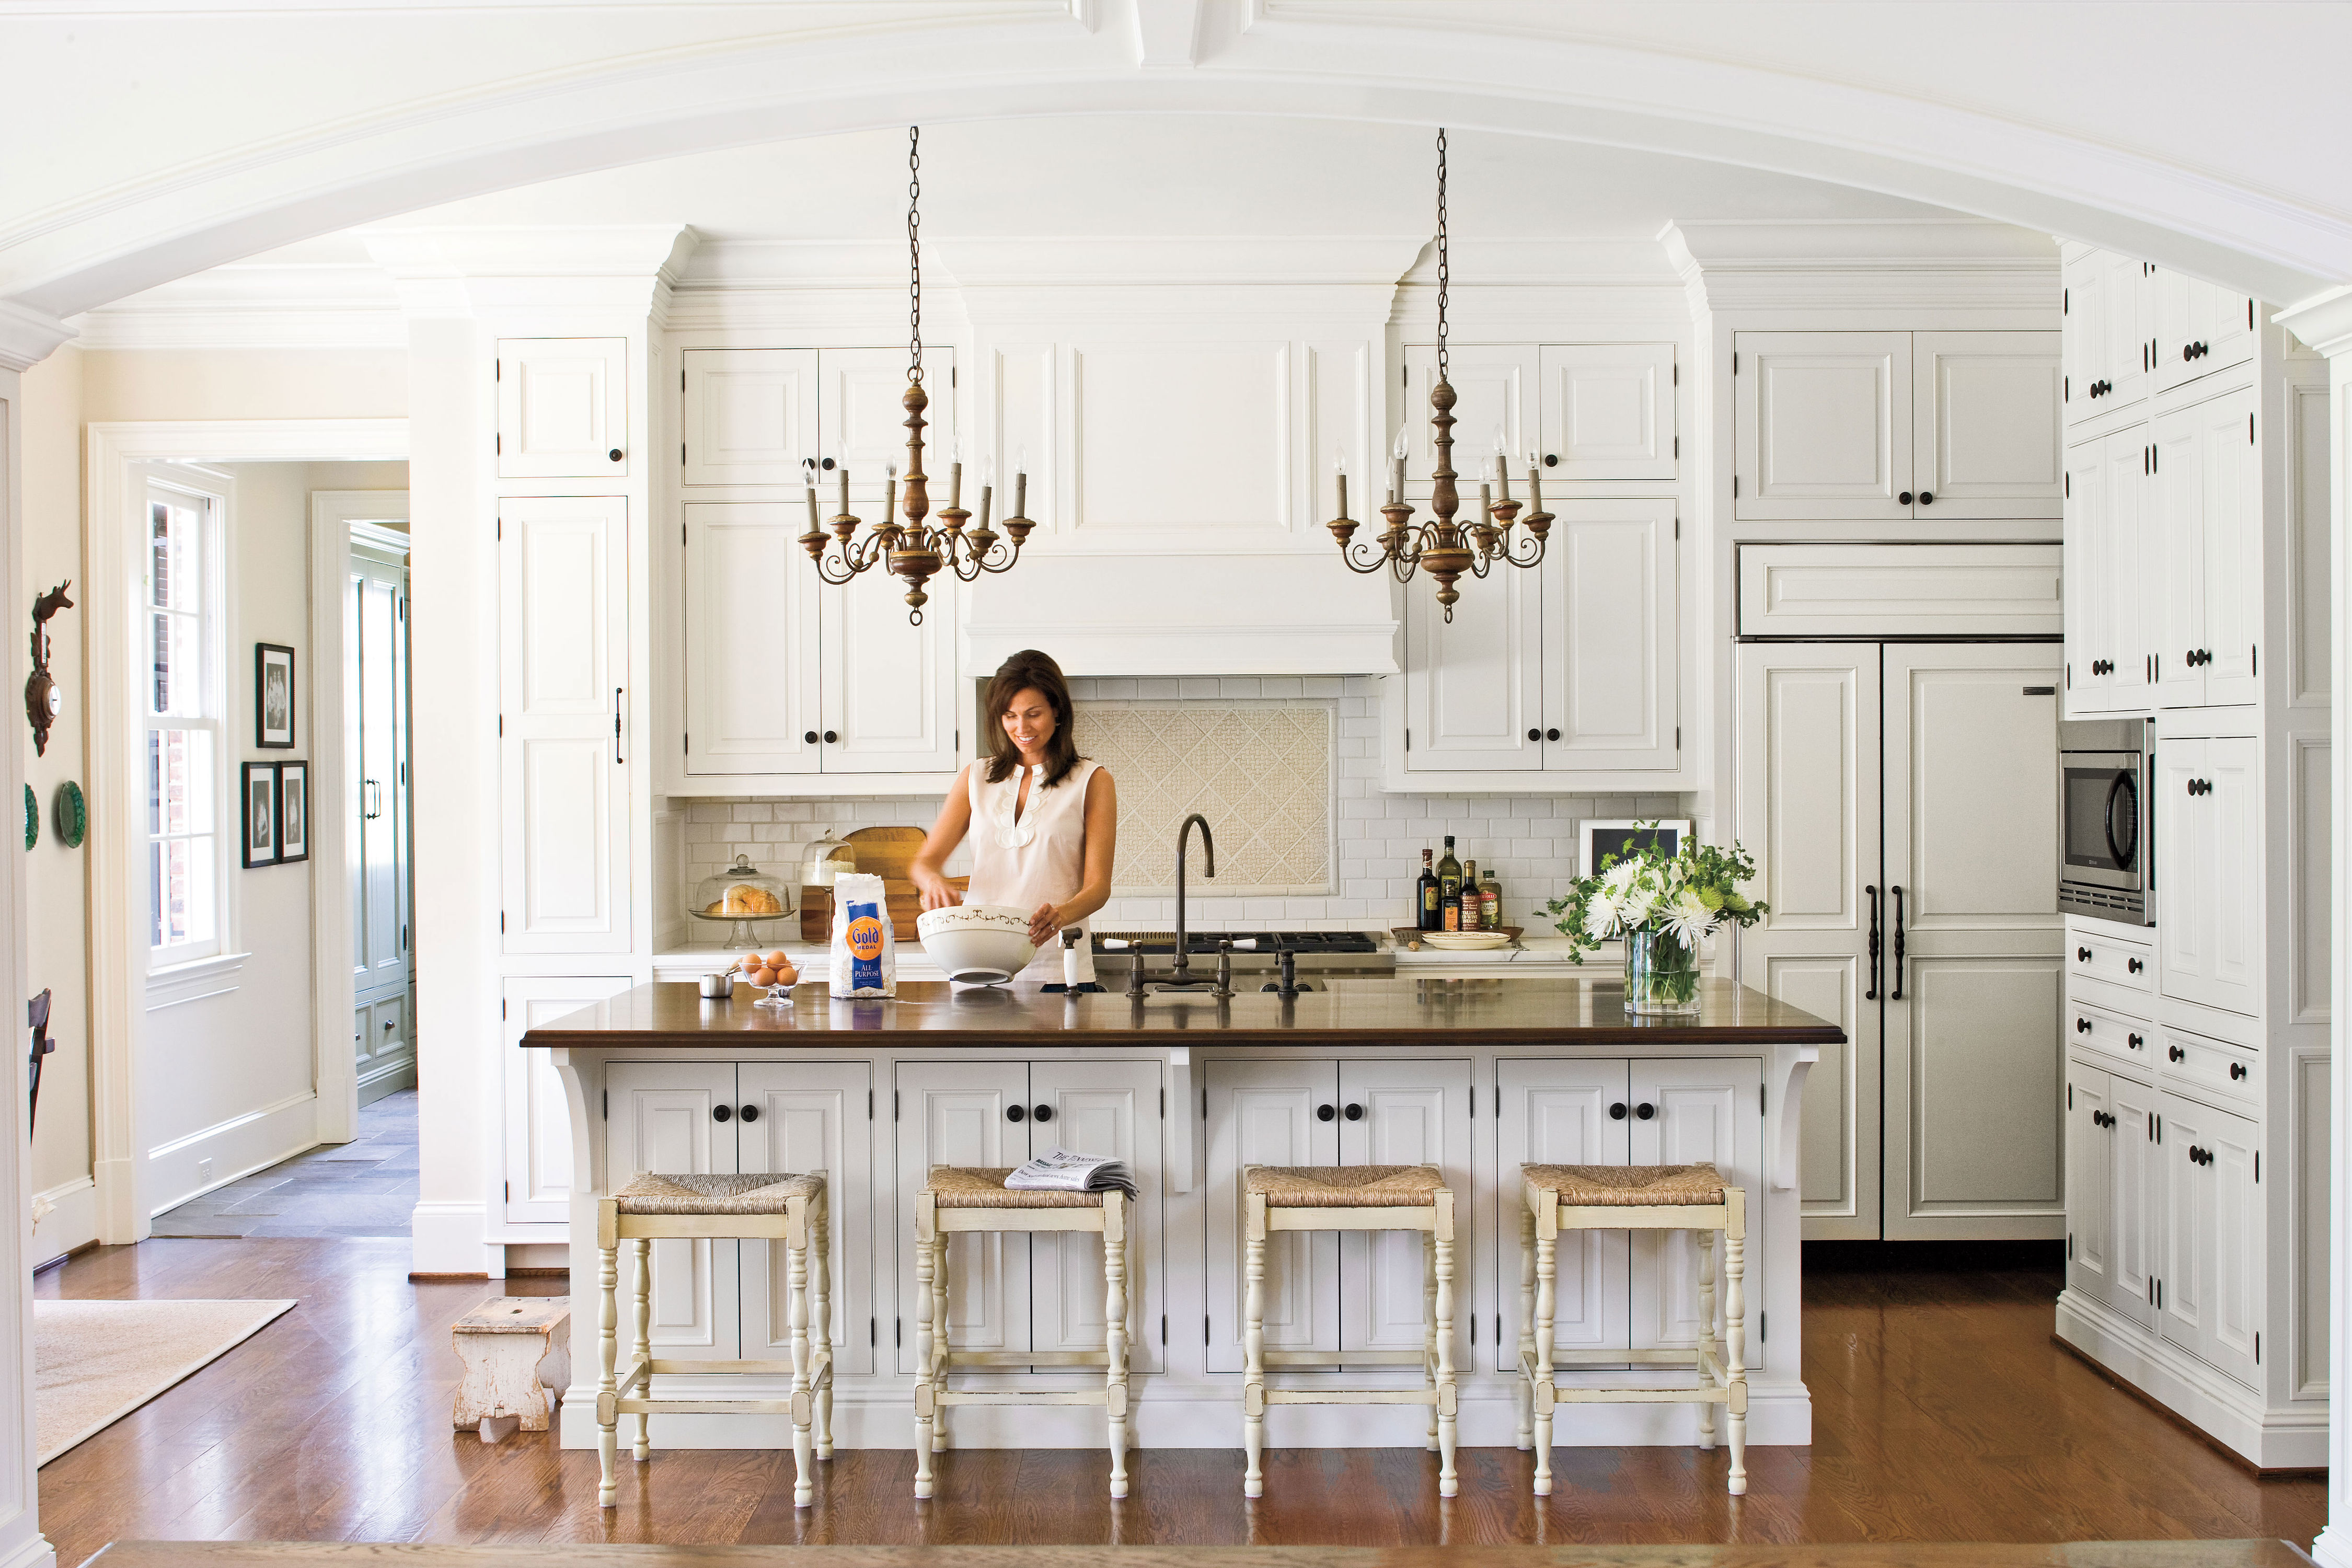 Crisp & Clic White Kitchen Cabinets - Southern Living on furniture styles for 2015, carpet styles for 2015, floor styles for 2015, home styles for 2015, tile for 2015, interior design styles for 2015, kitchens ideas for 2015,